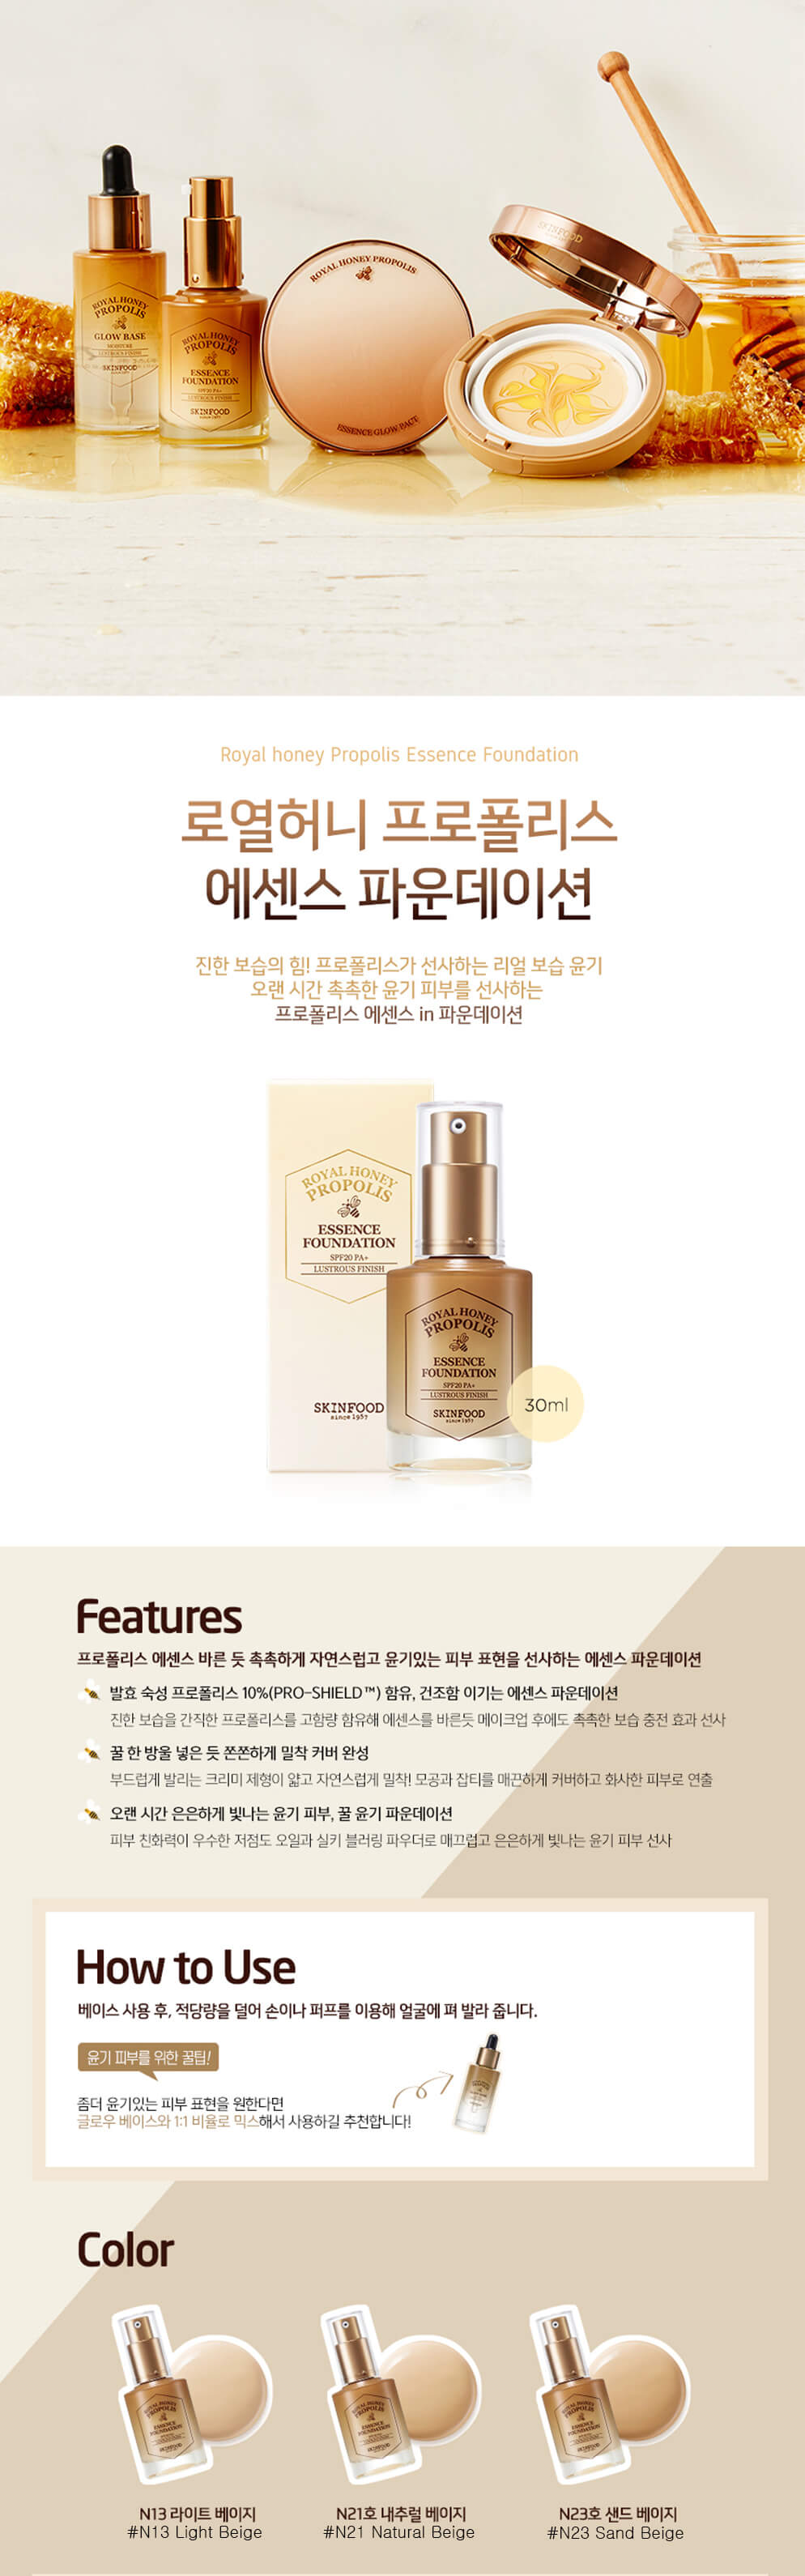 SKINFOOD Royal Honey Propolis Essence Foundation [#13]